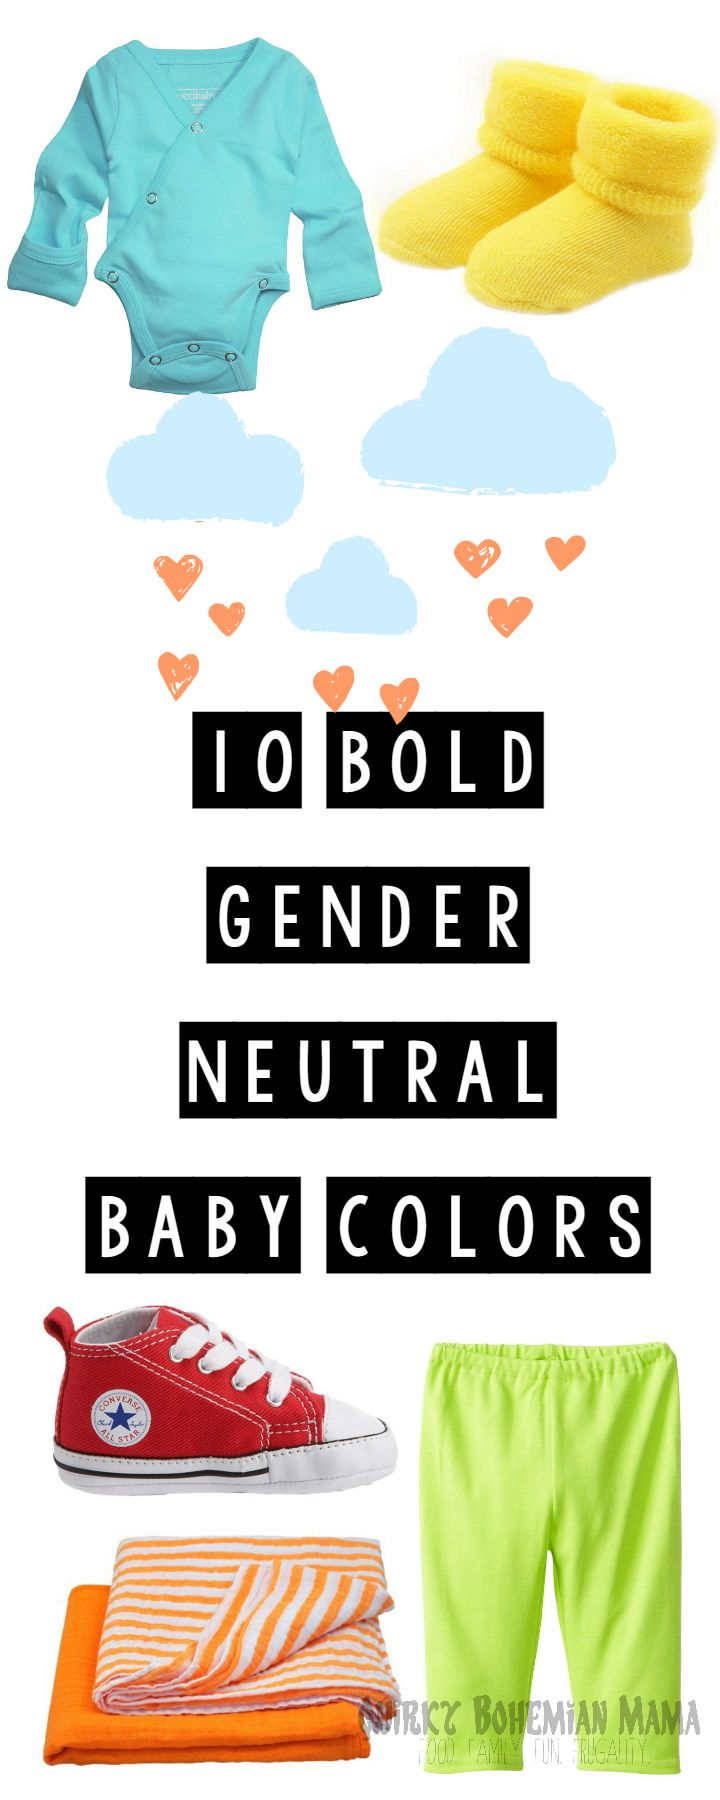 10 Bold Gender Neutral Baby Colors Unisex Baby Clothes